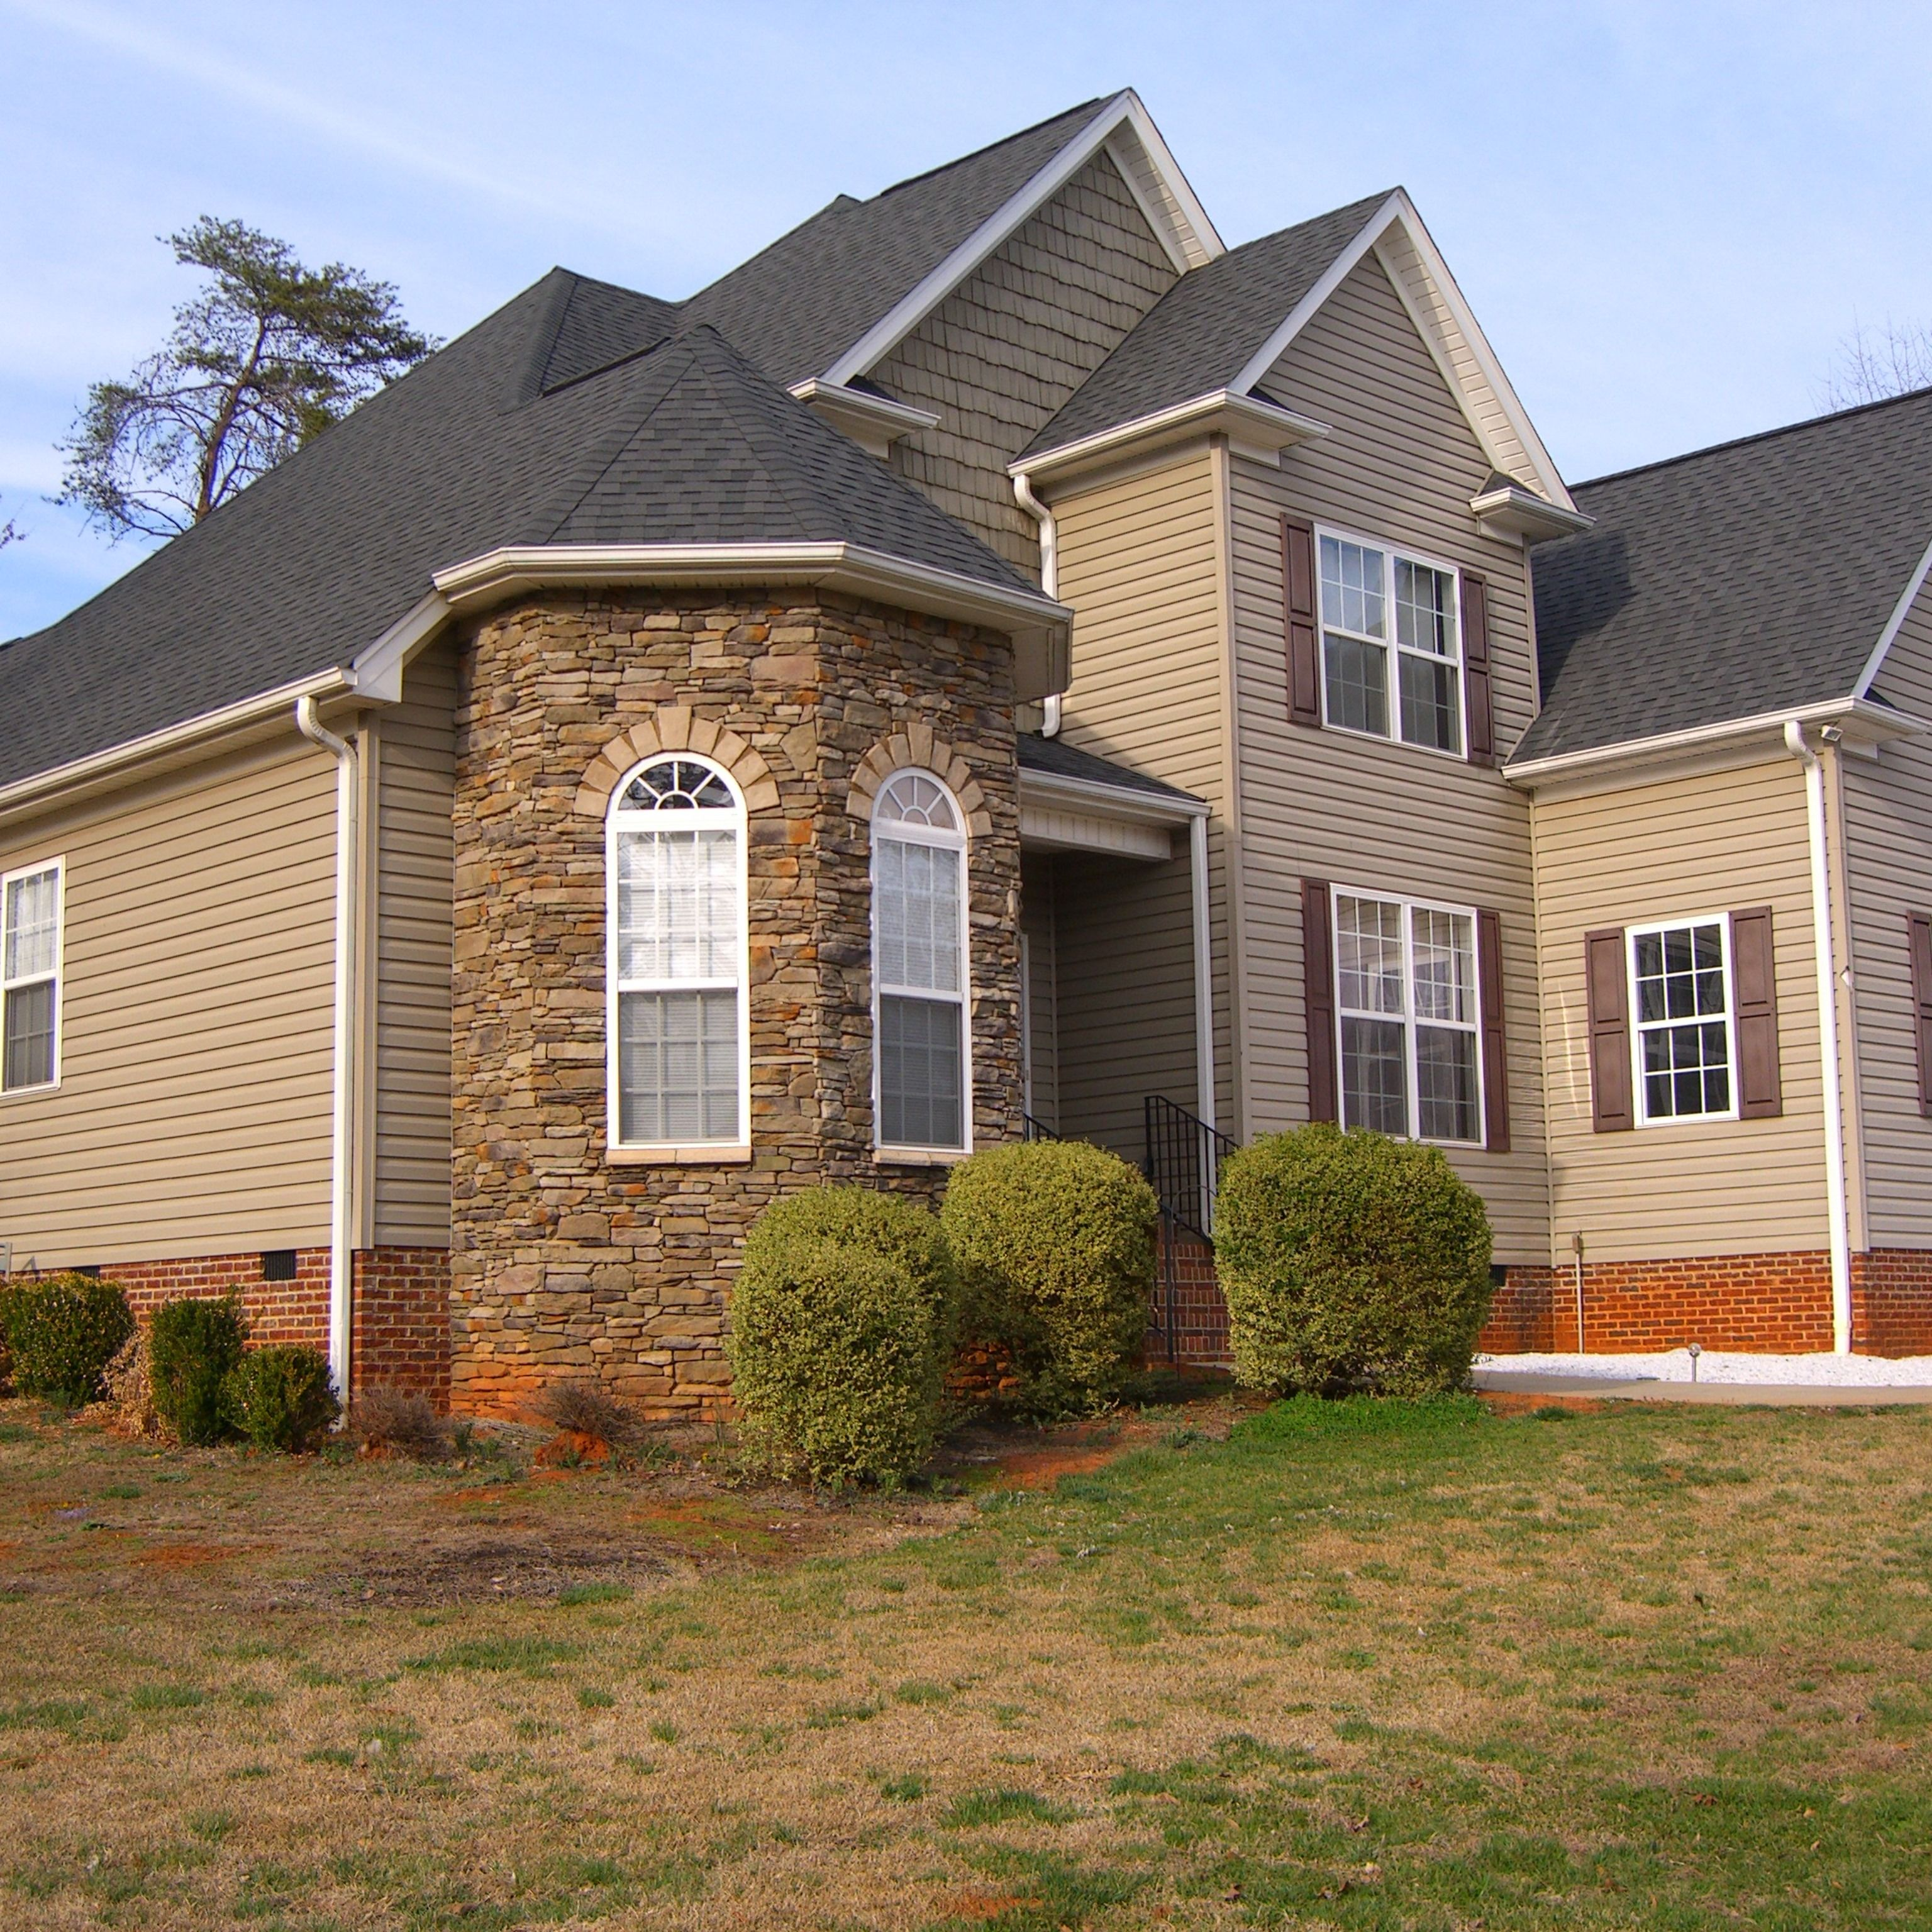 New Listing 329 900 For Sale 5 Bed 3 Full Bath Bonus Room 3 023 Sq Ft 1 15 Acres 99 Fairway Dr Pickens Sc 29671 House Styles Bonus Room Full Bath